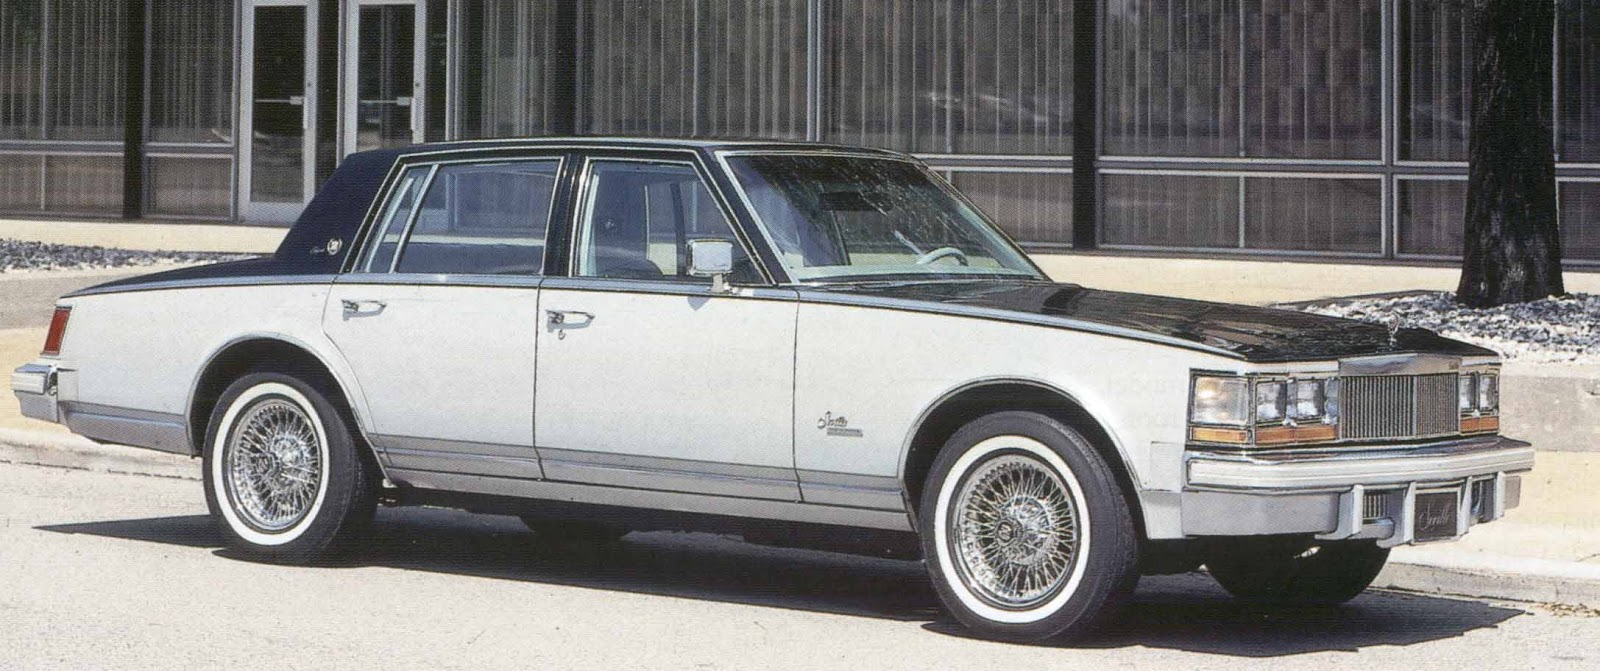 Phscollectorcarworld October 2012 1978 Cadillac Deville On Blades Offered The Seville Elegante Package A Two Tone Paint Wire Wheel And Leather Interior Upgrade For 2700 Extra